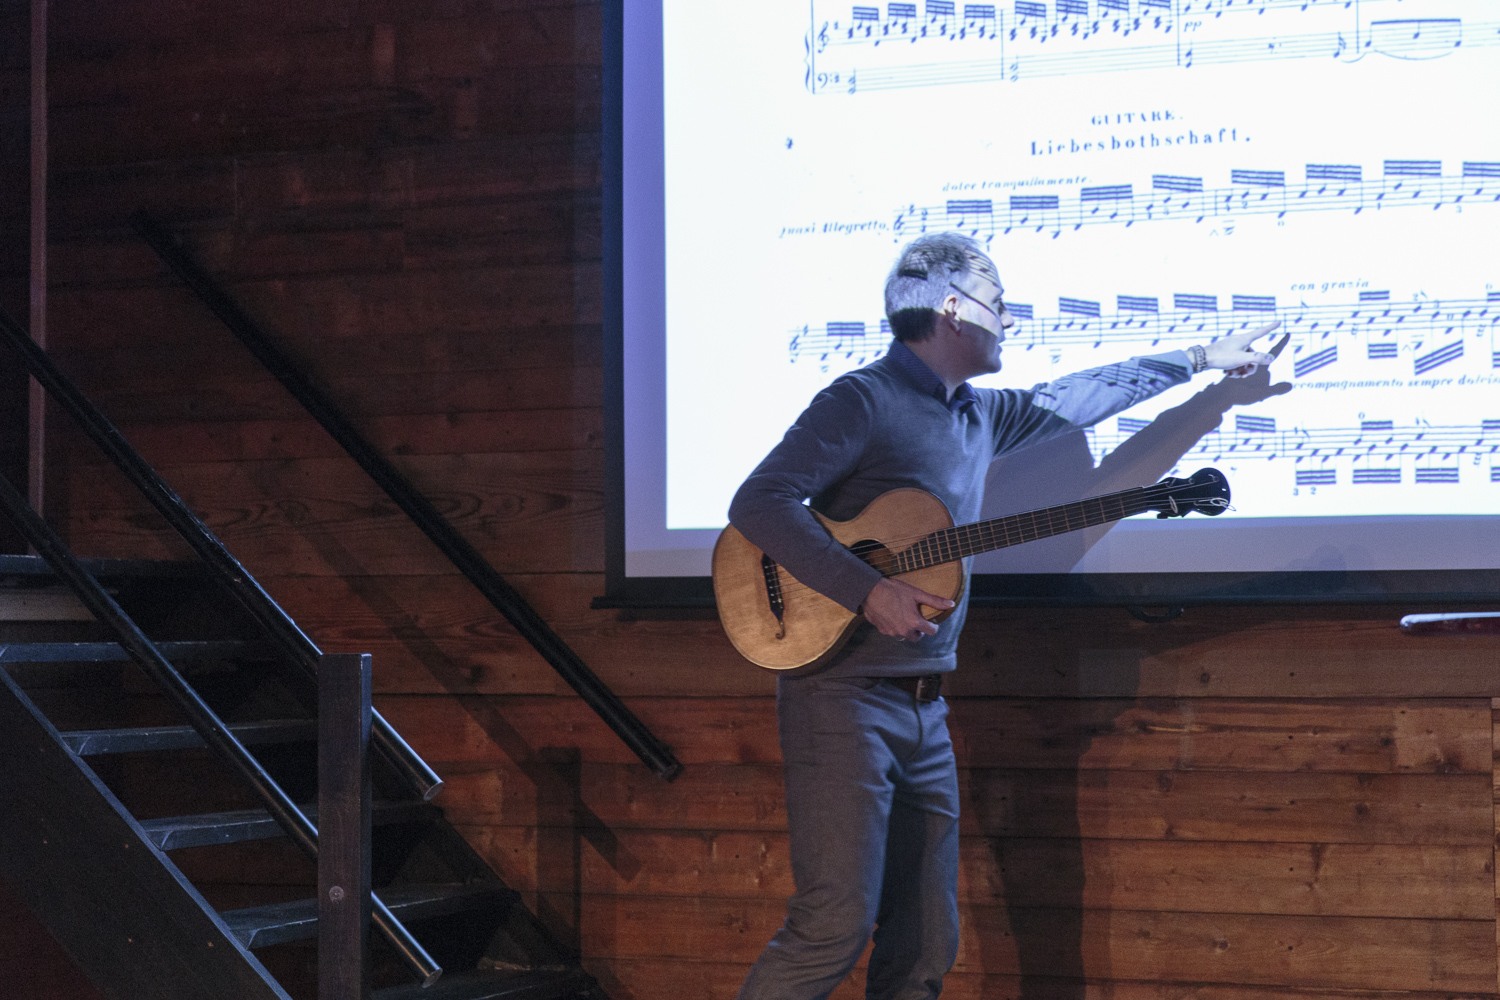 Lecture by Fernando Cordas: The Poetic Guitar.